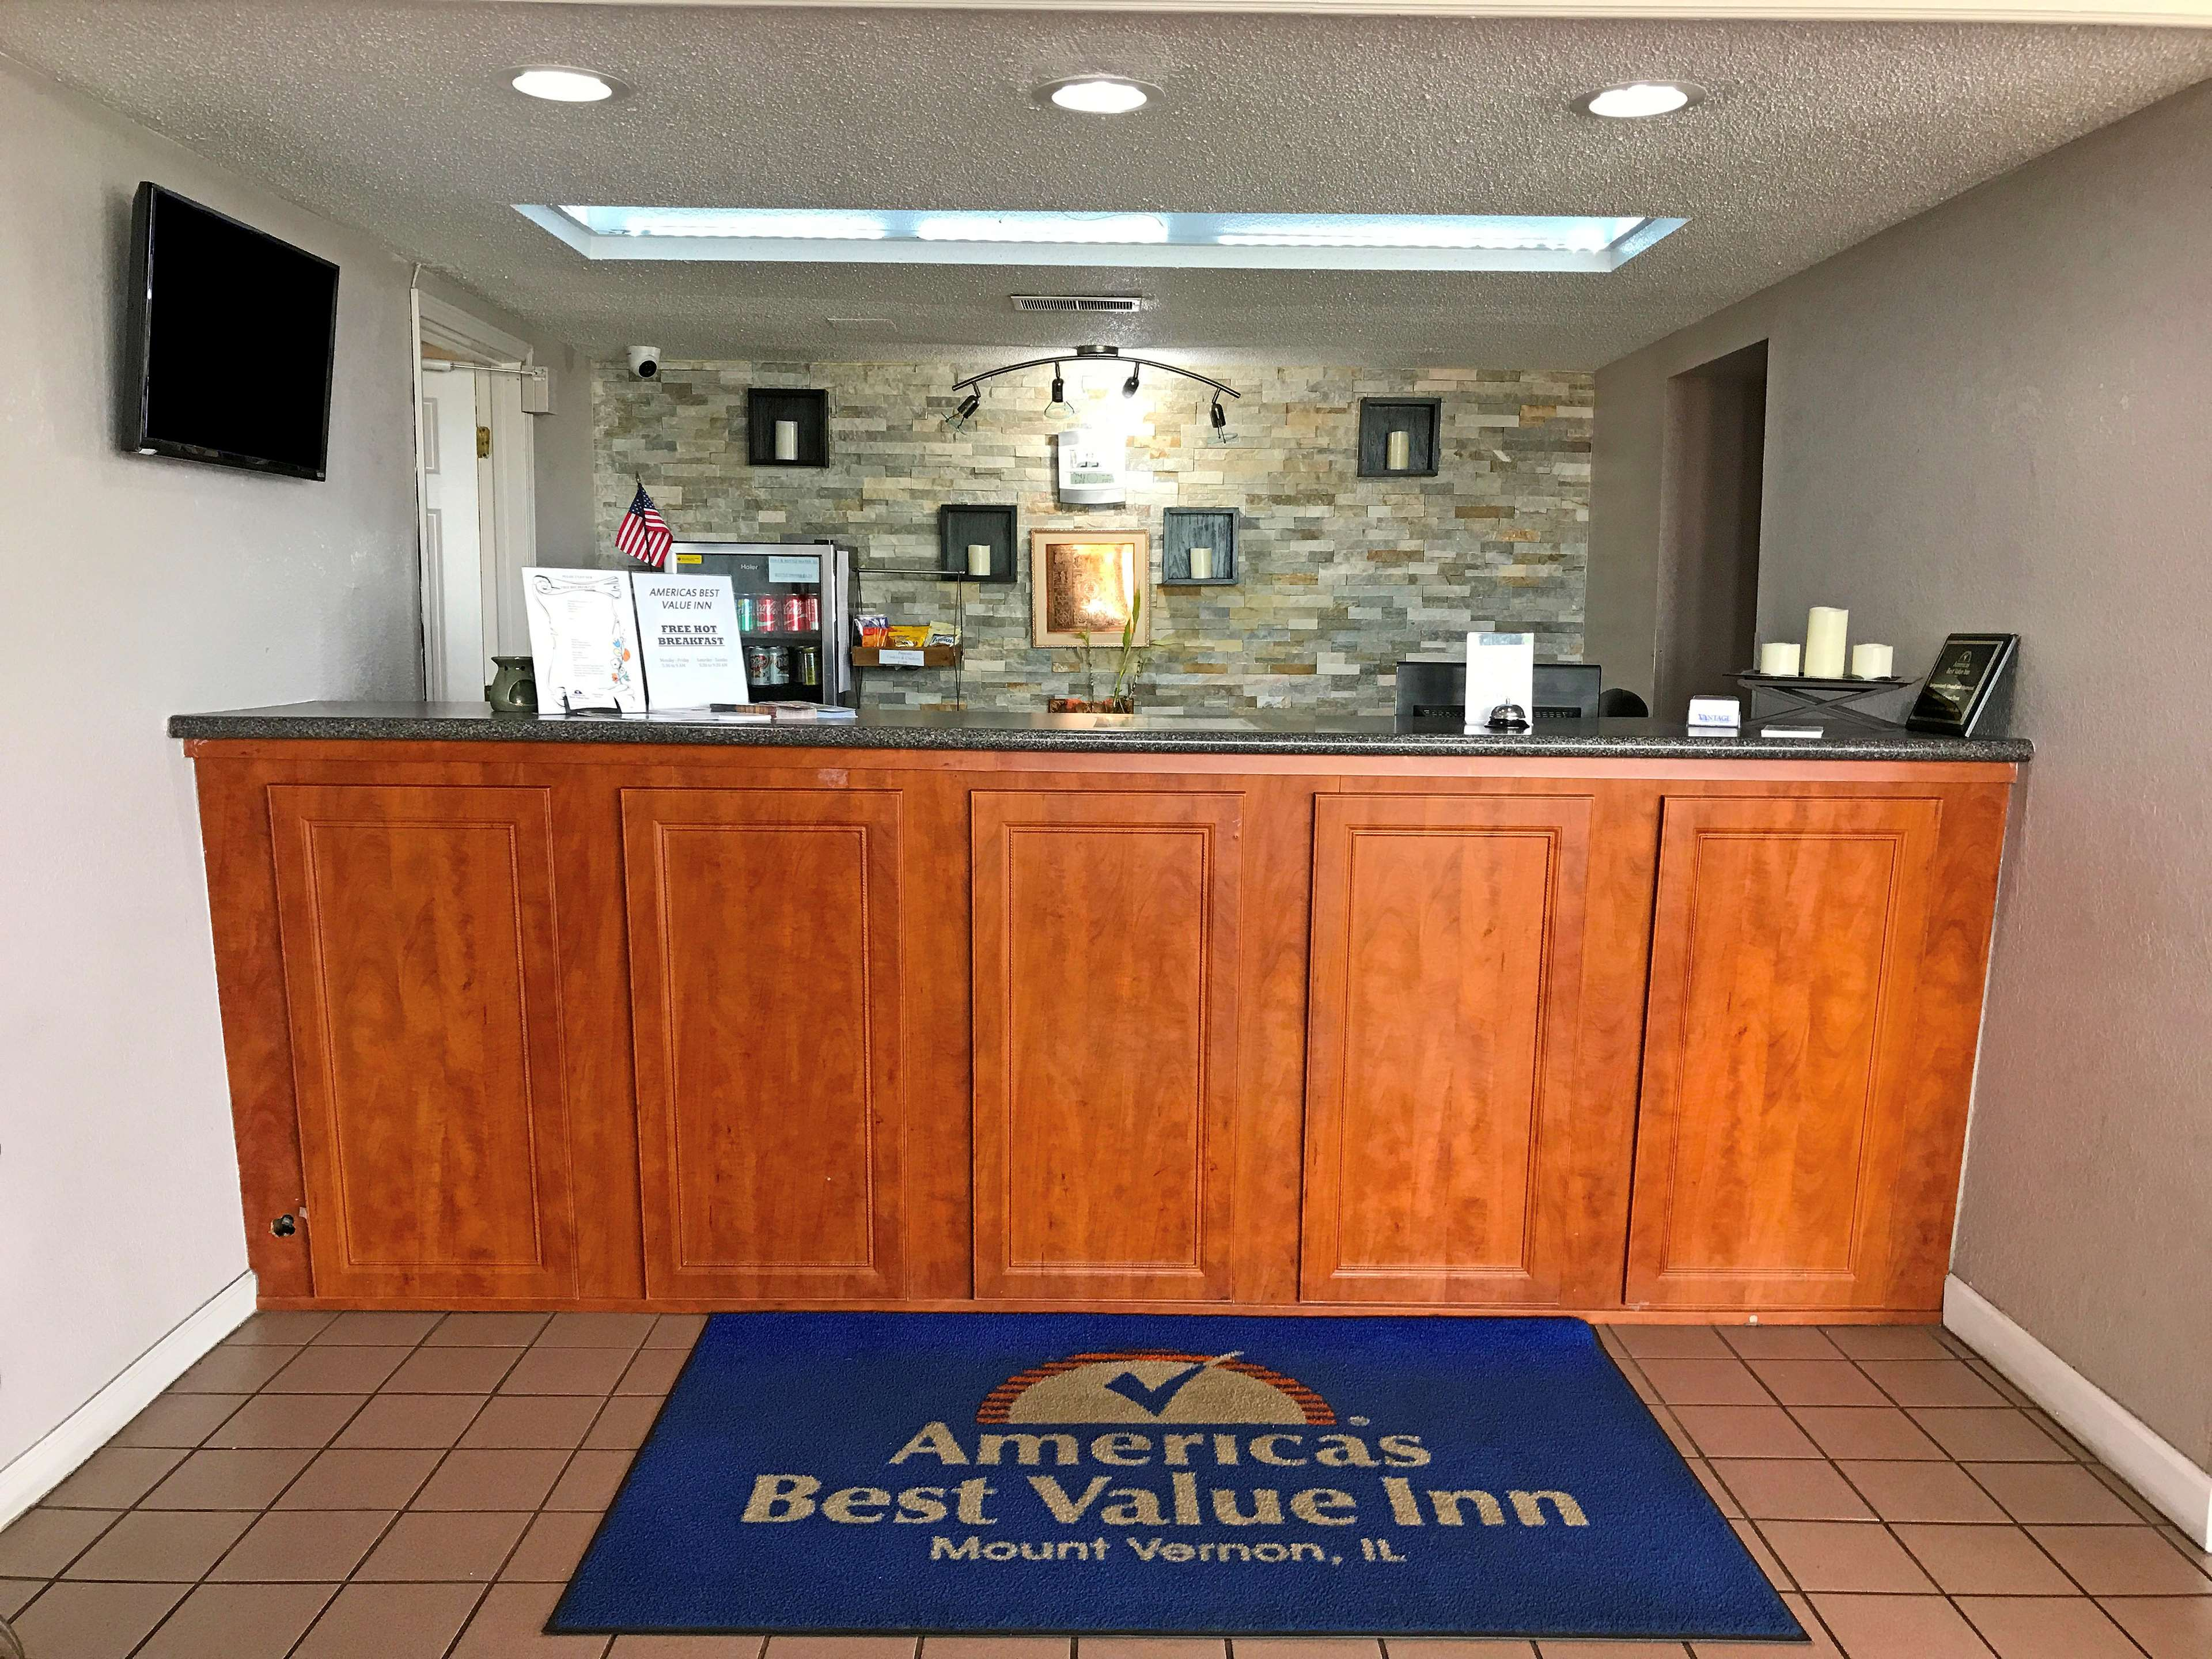 Americas best value inn mount vernon coupons near me in for Americas best coupons